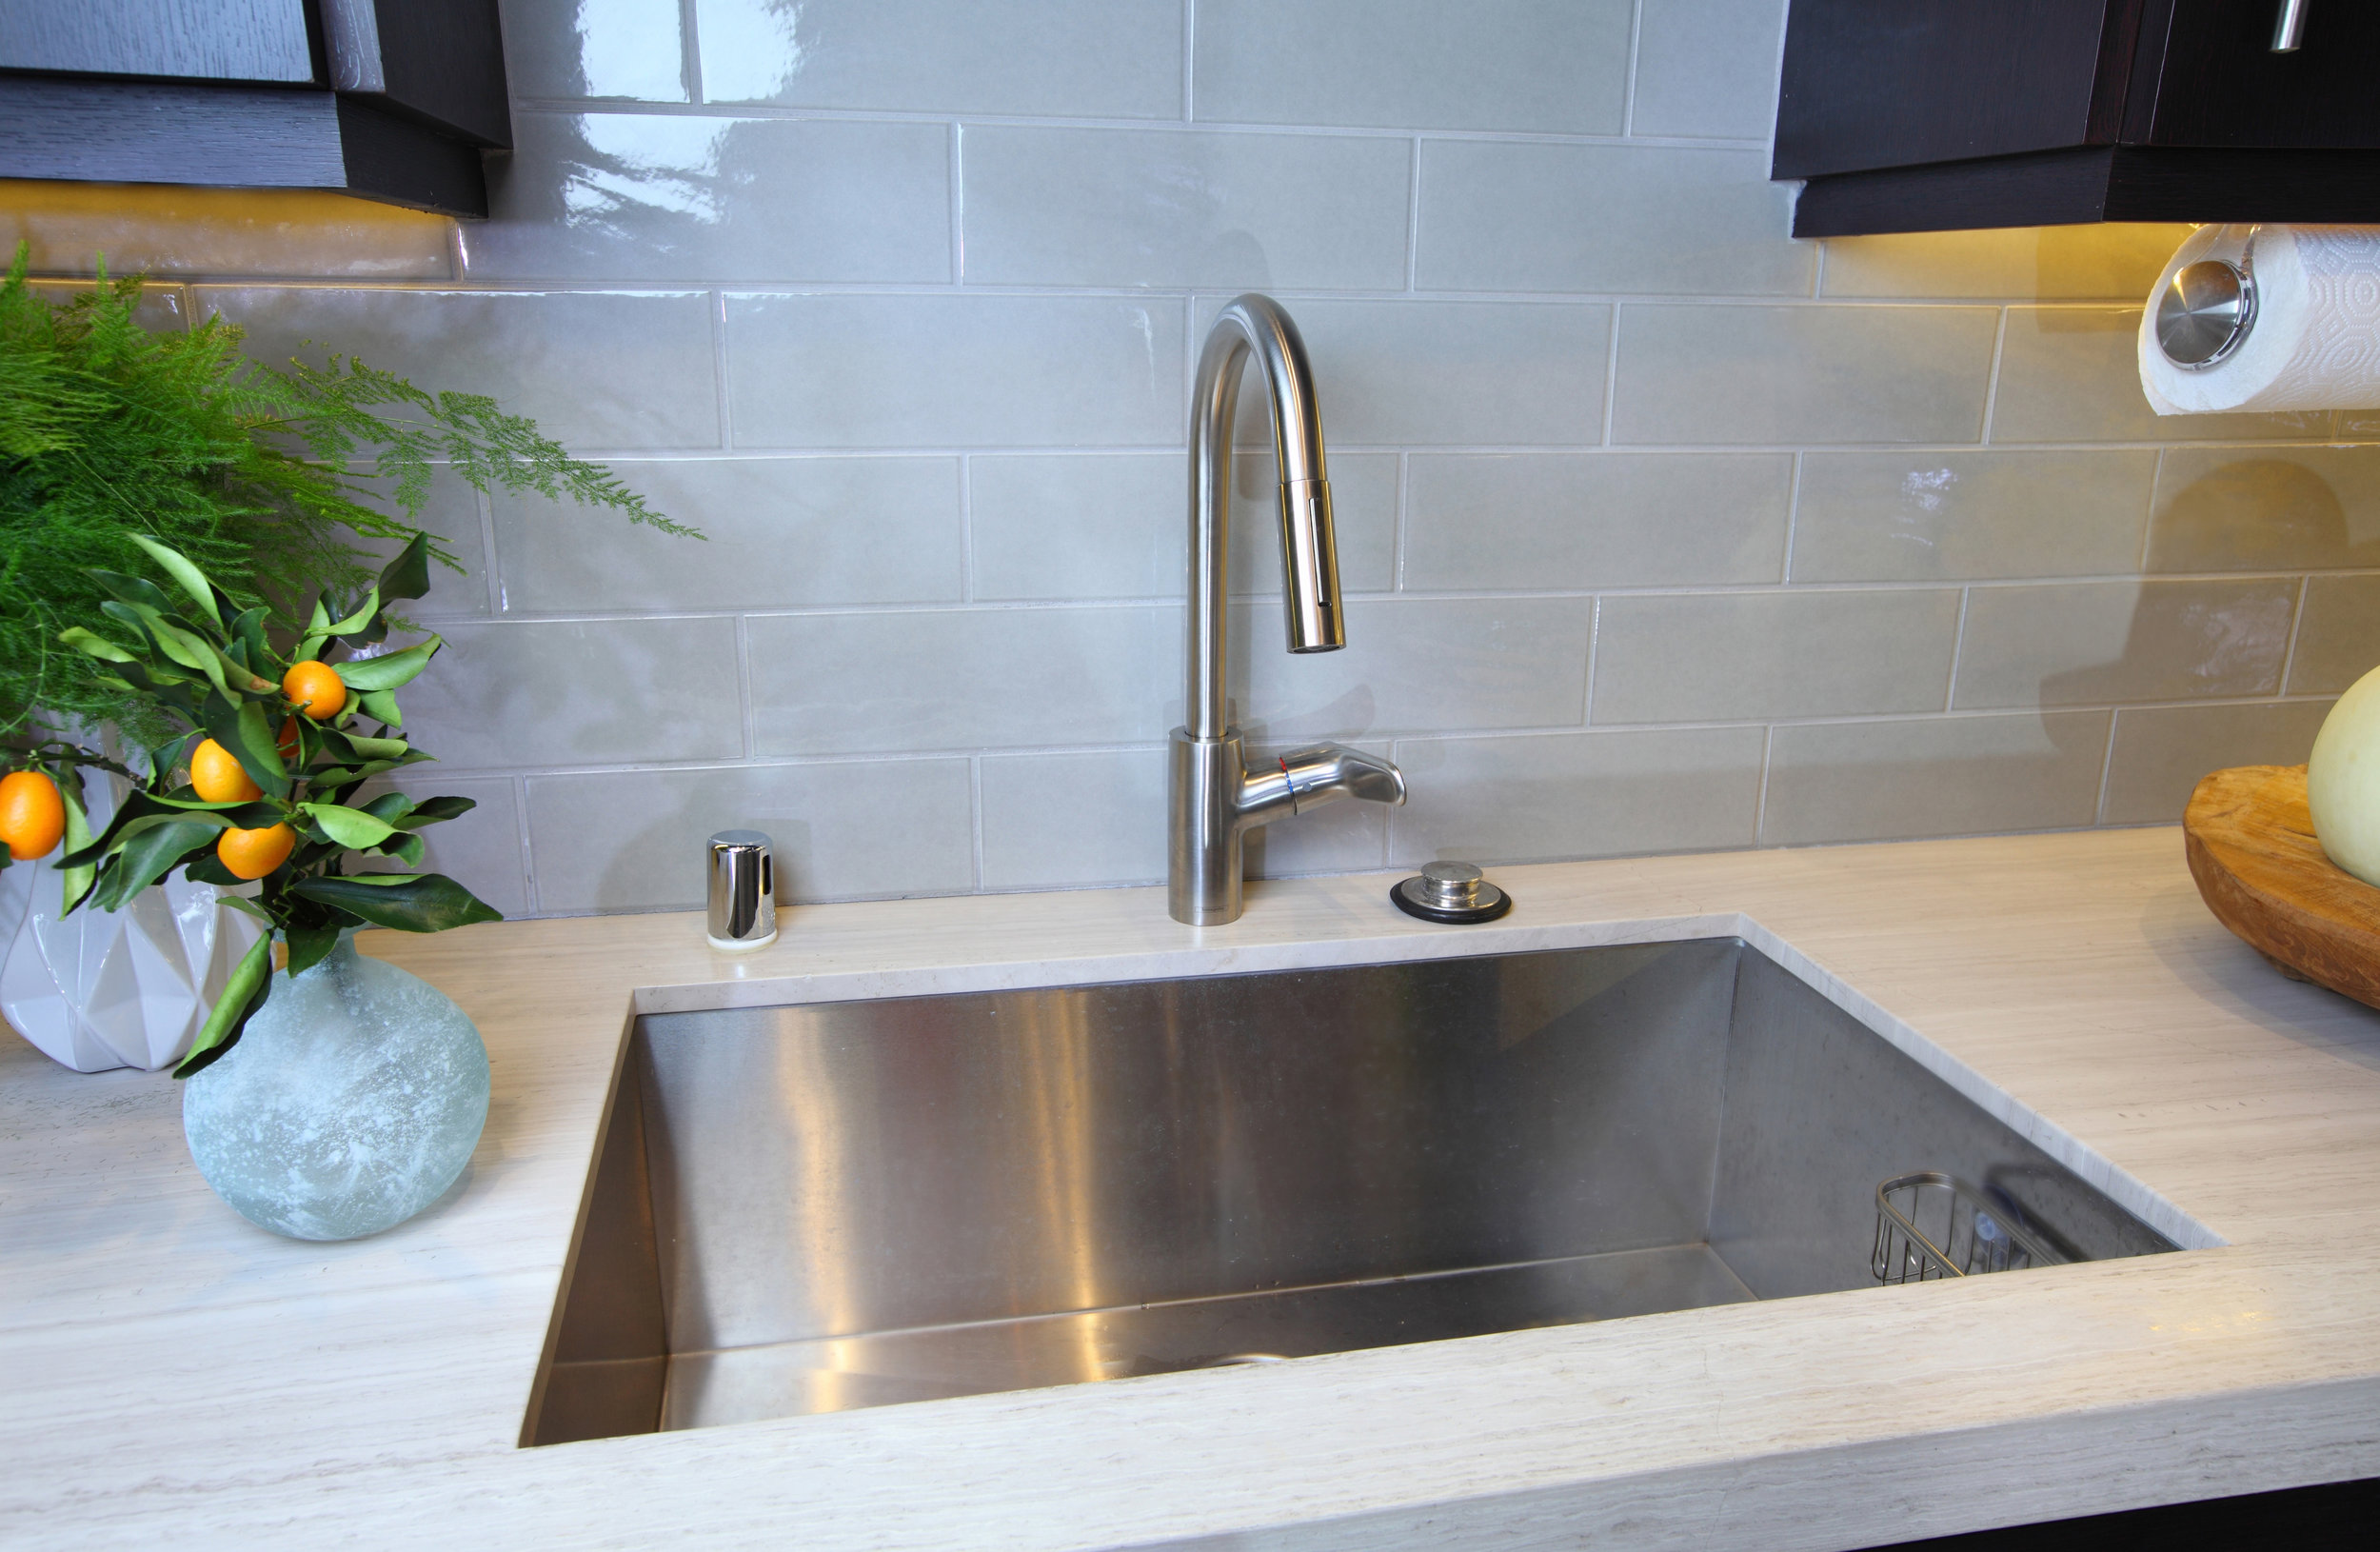 Sarah-barnard-design-modern-luxury-kitchen-sink.jpg